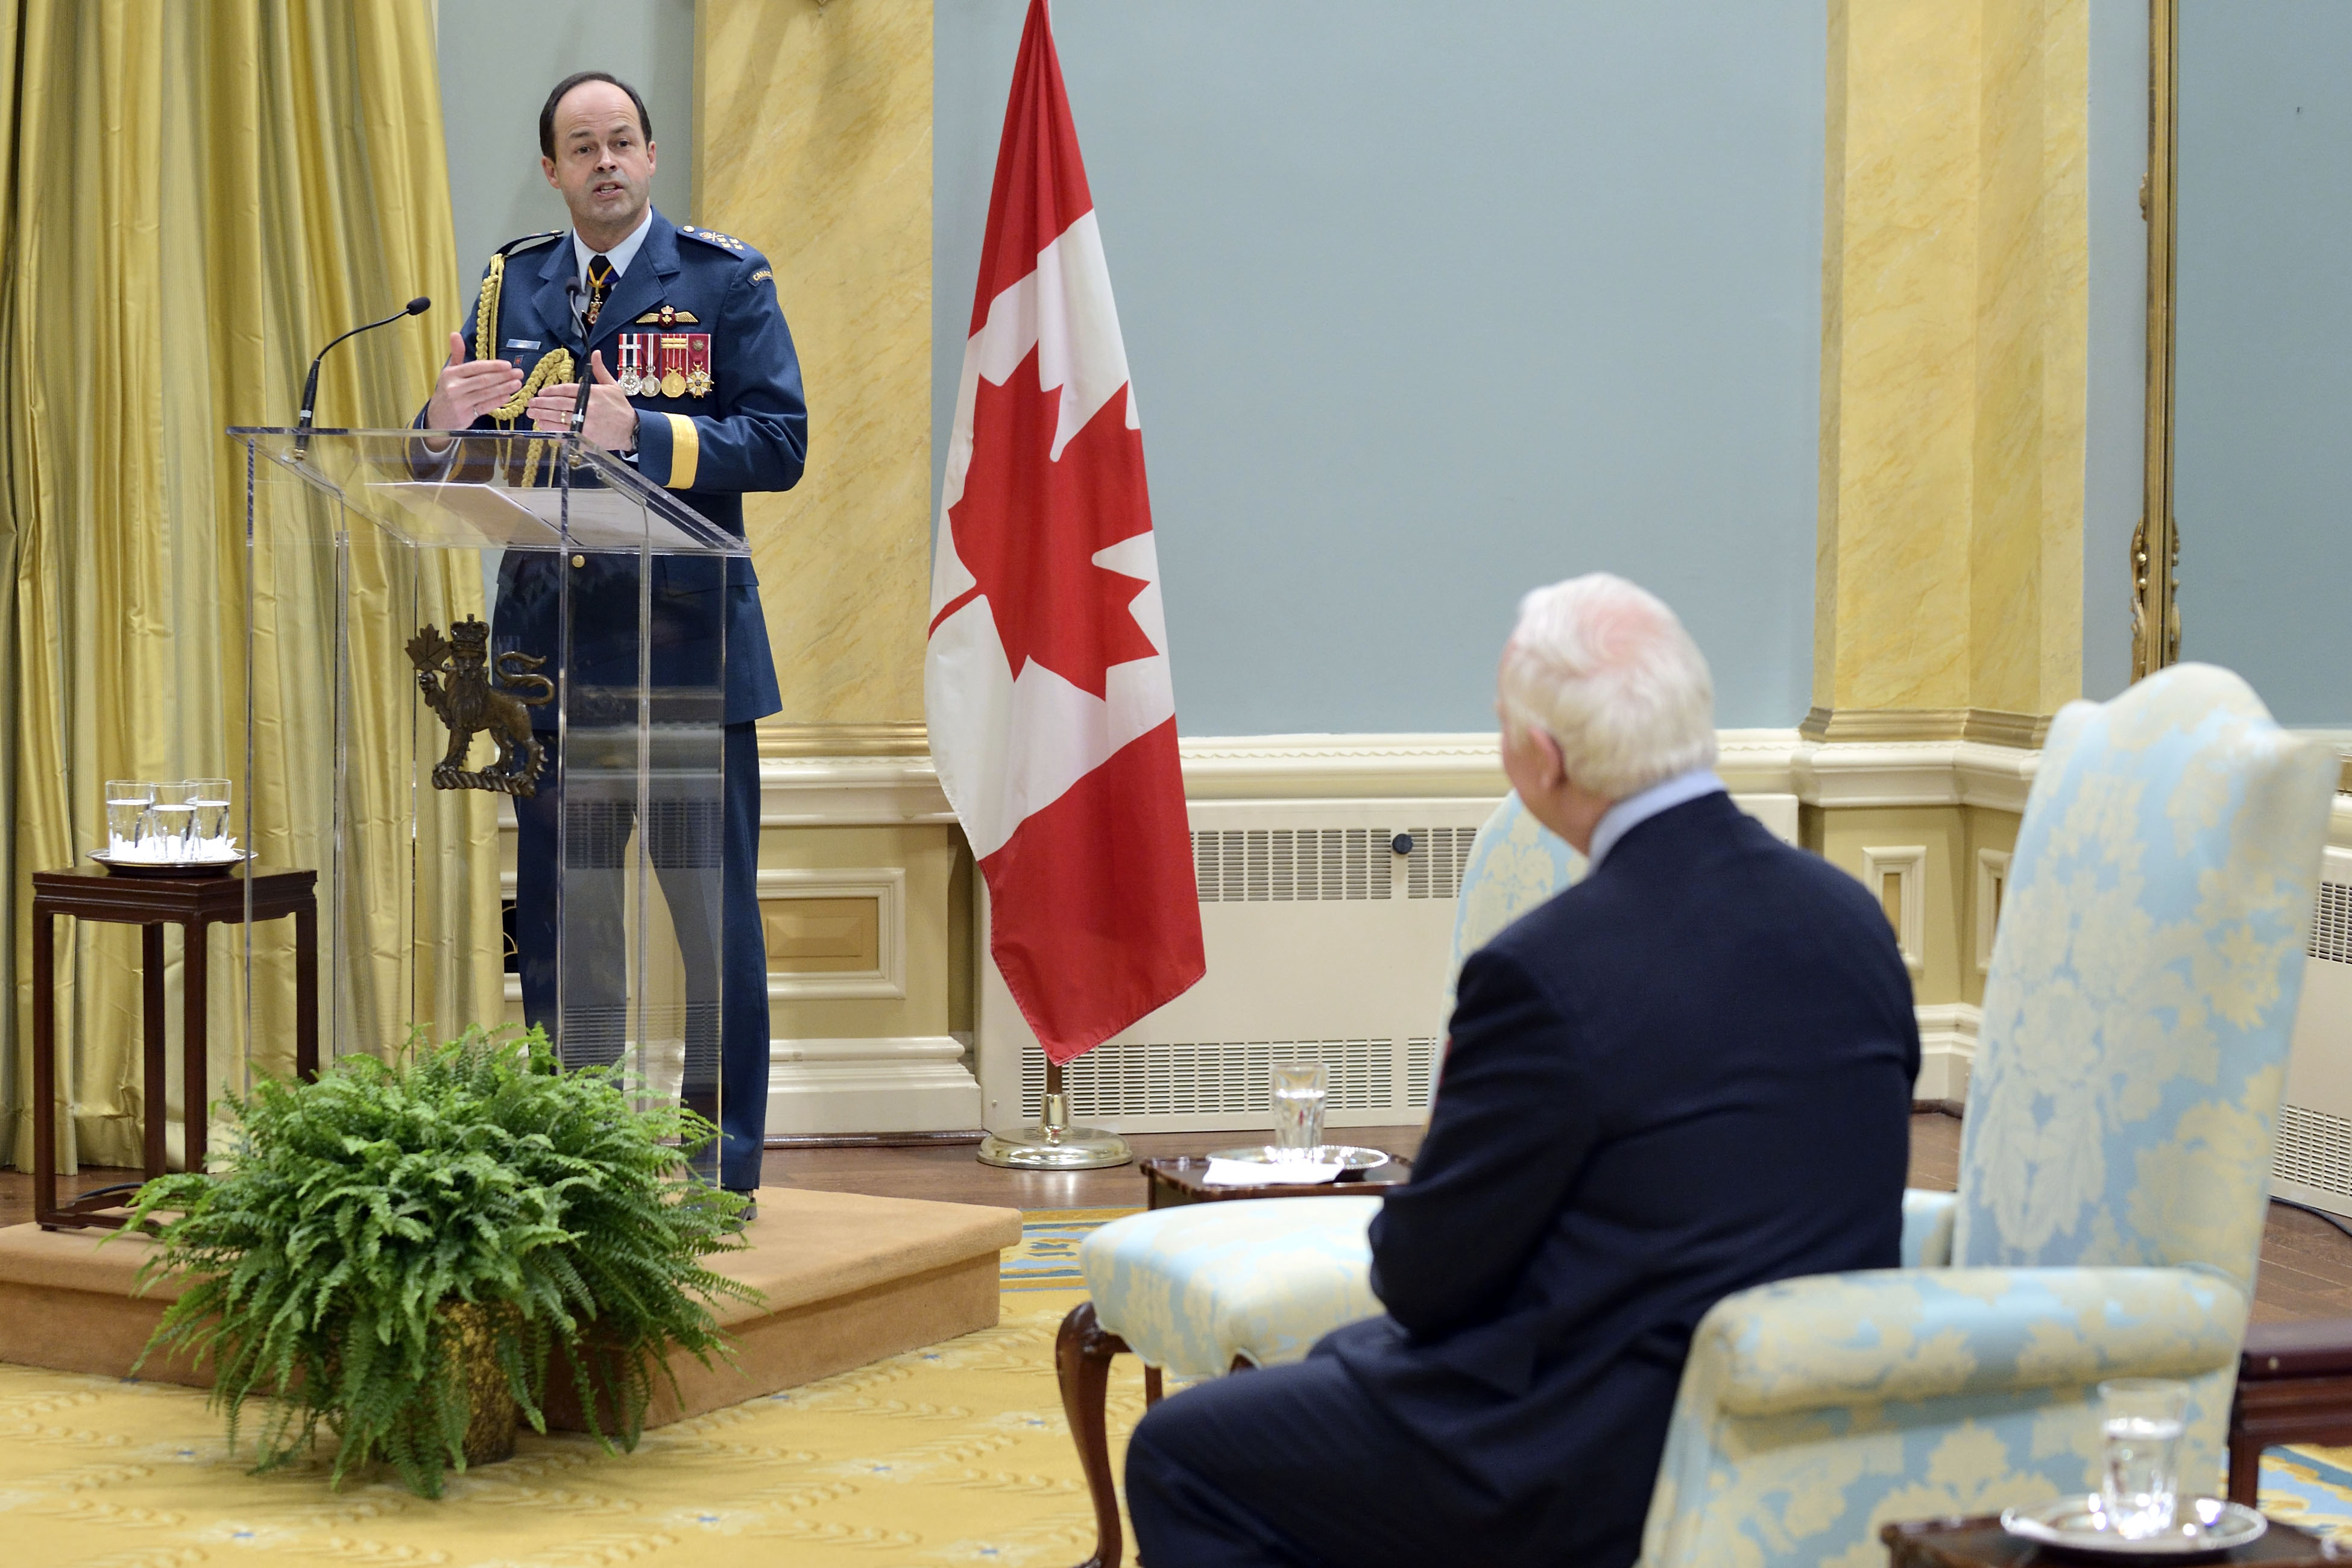 General Thomas J. Lawson, Chief of the Defence Staff, delivered remarks for the occasion.